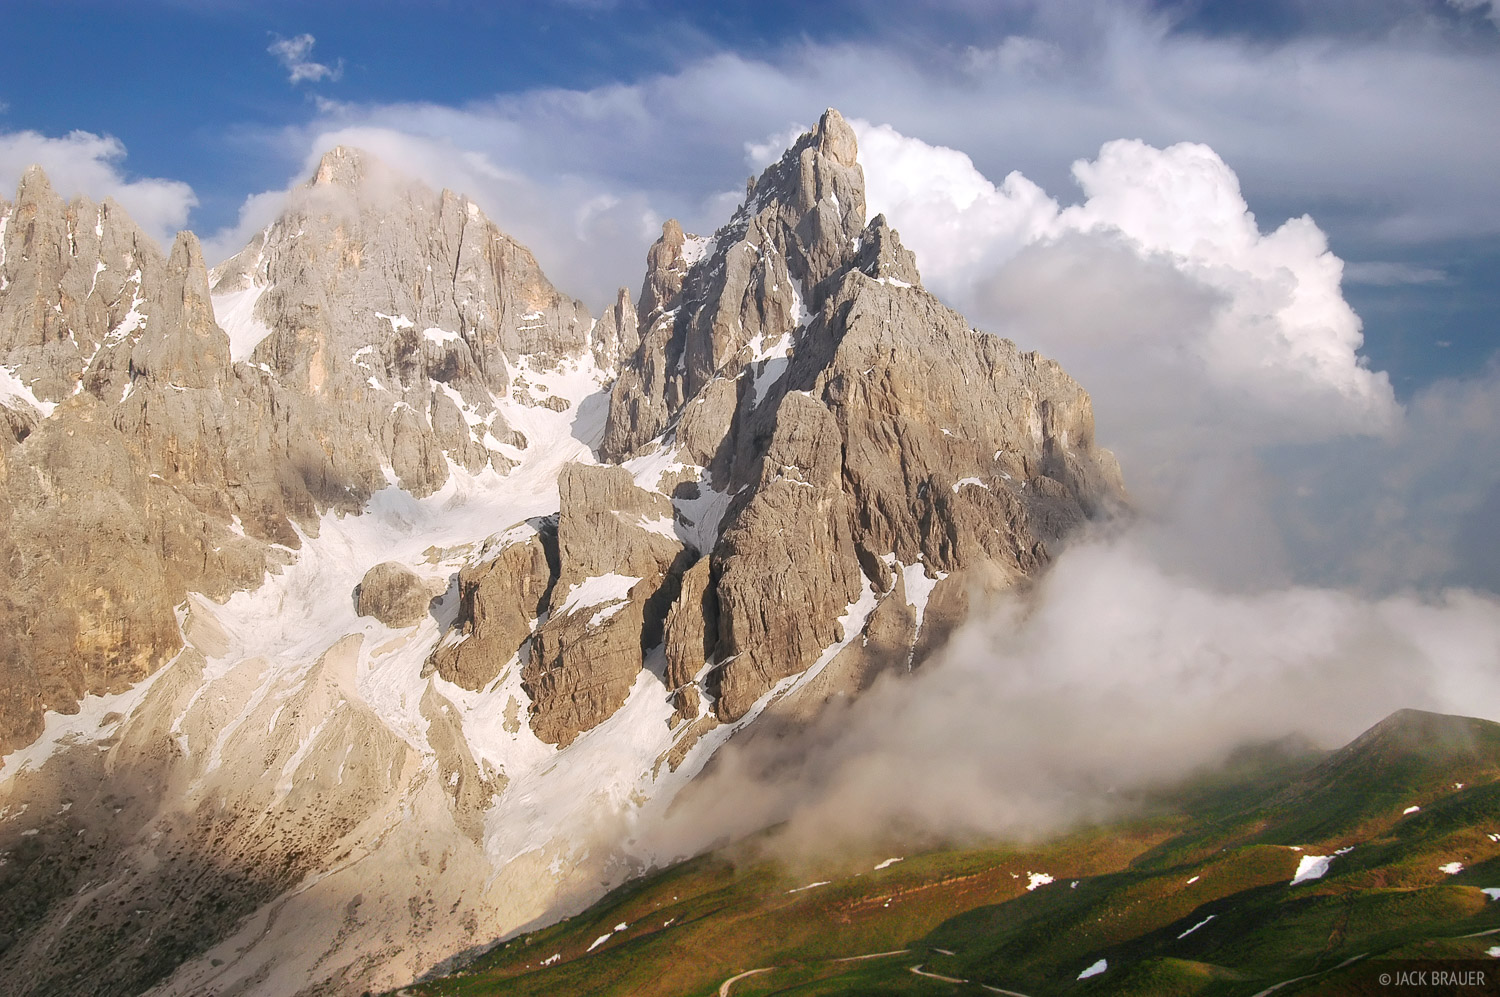 Cimon della Pala, Dolomites, Italy, photo